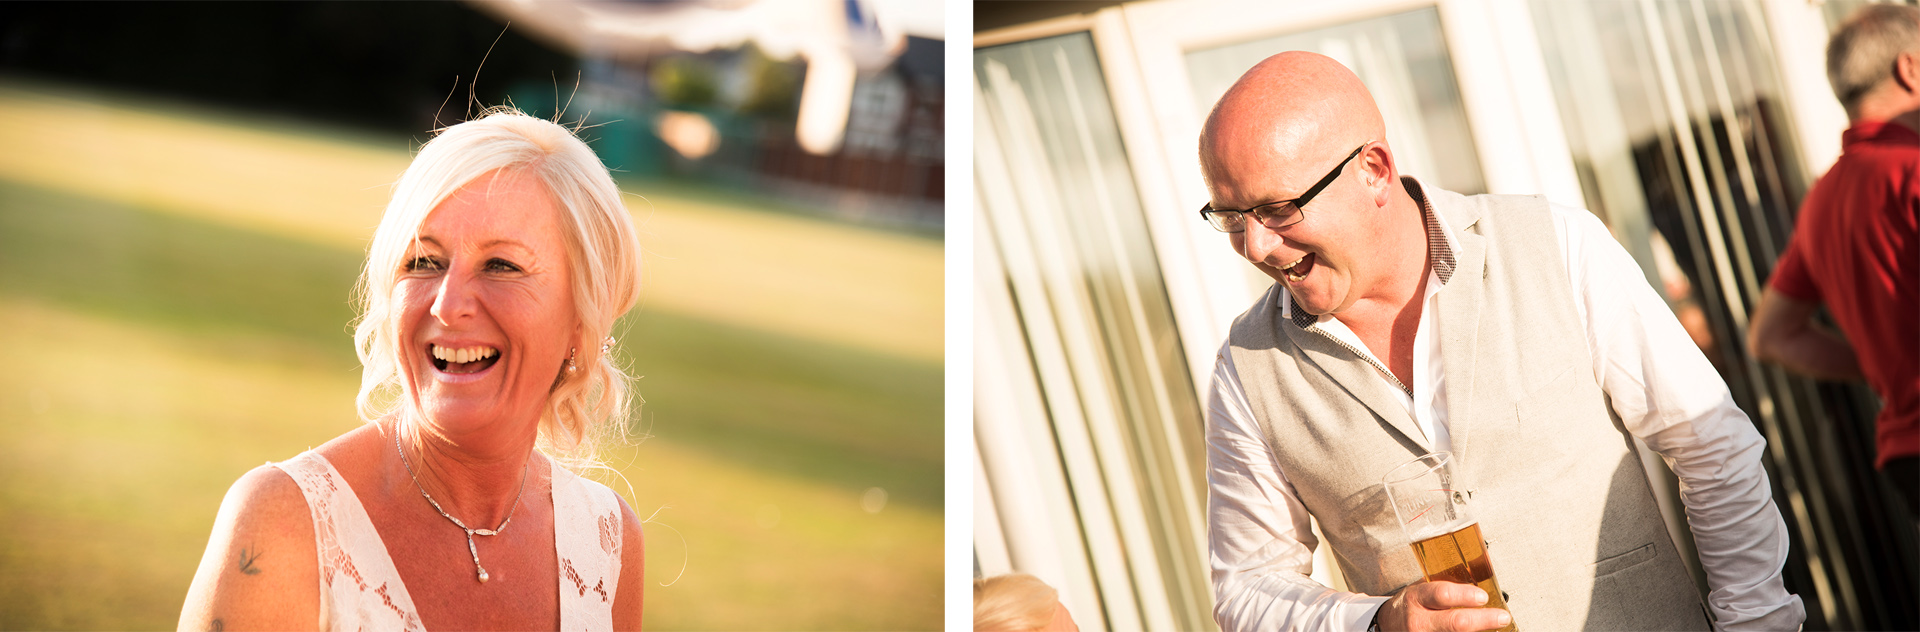 Coventry Wedding Photographer AJTImages at Coventry and North Warwickshire Cricket Club